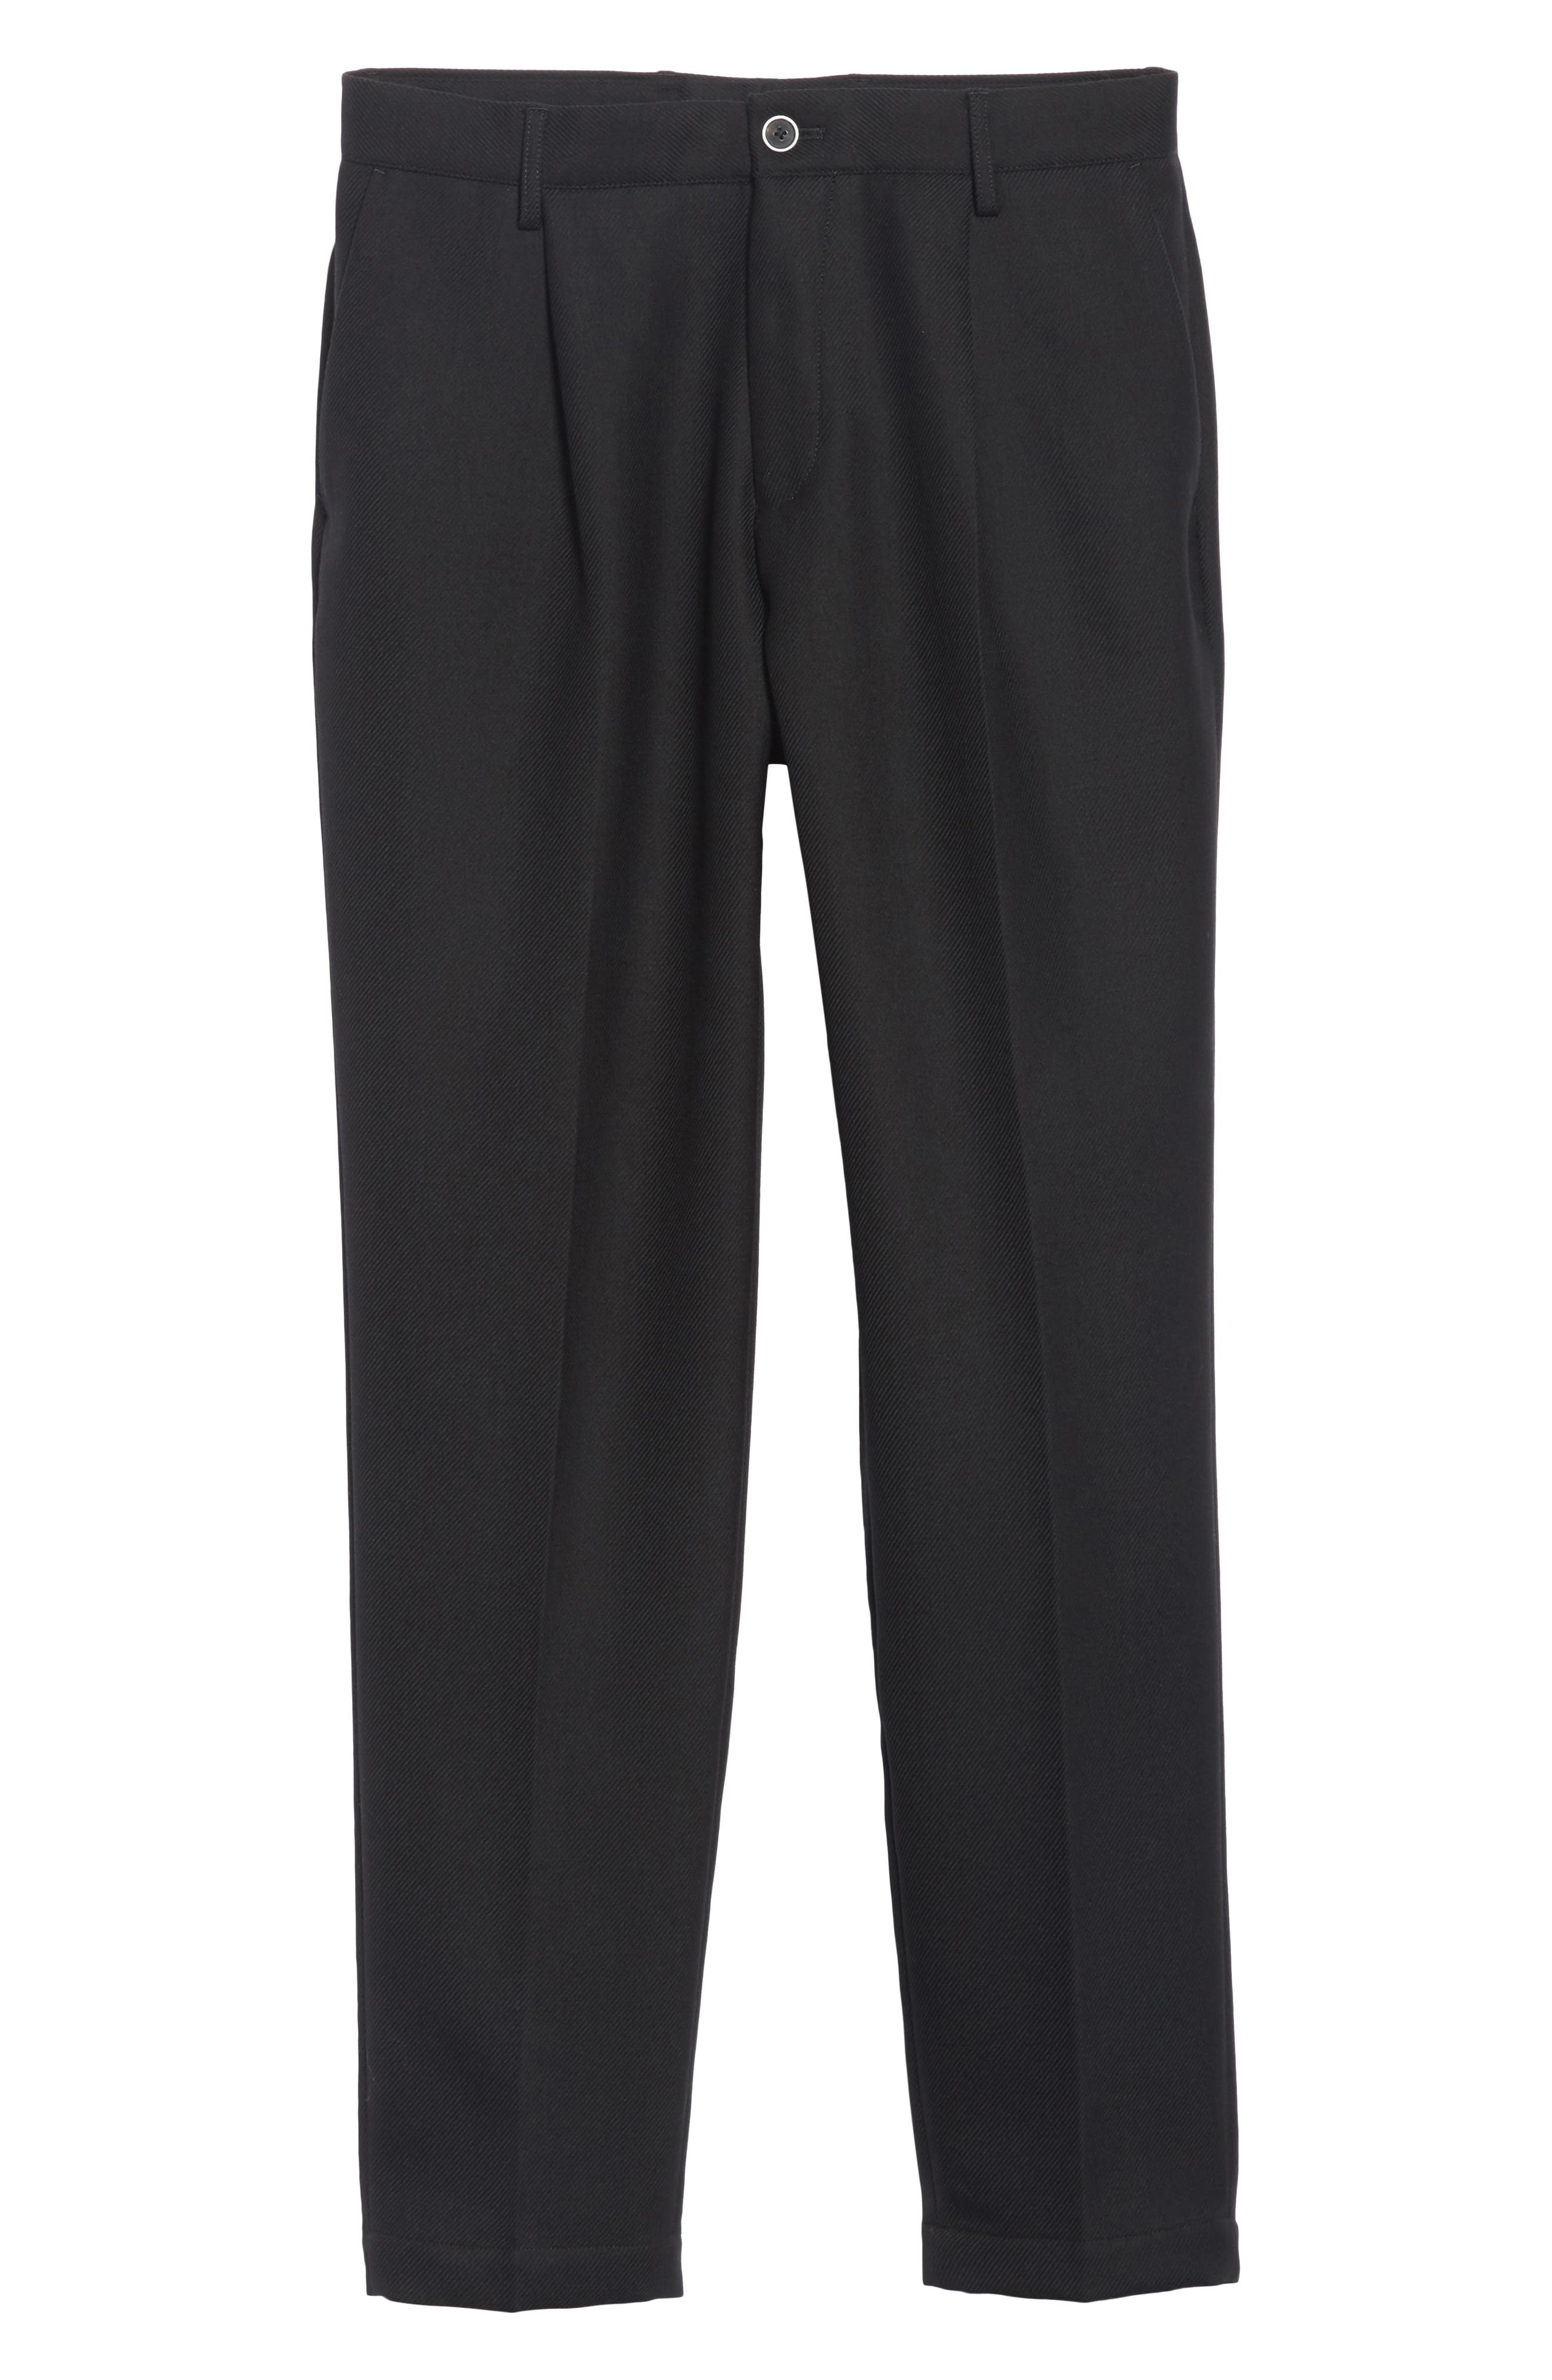 Pleated Pants,                             Alternate thumbnail 6, color,                             BLACK